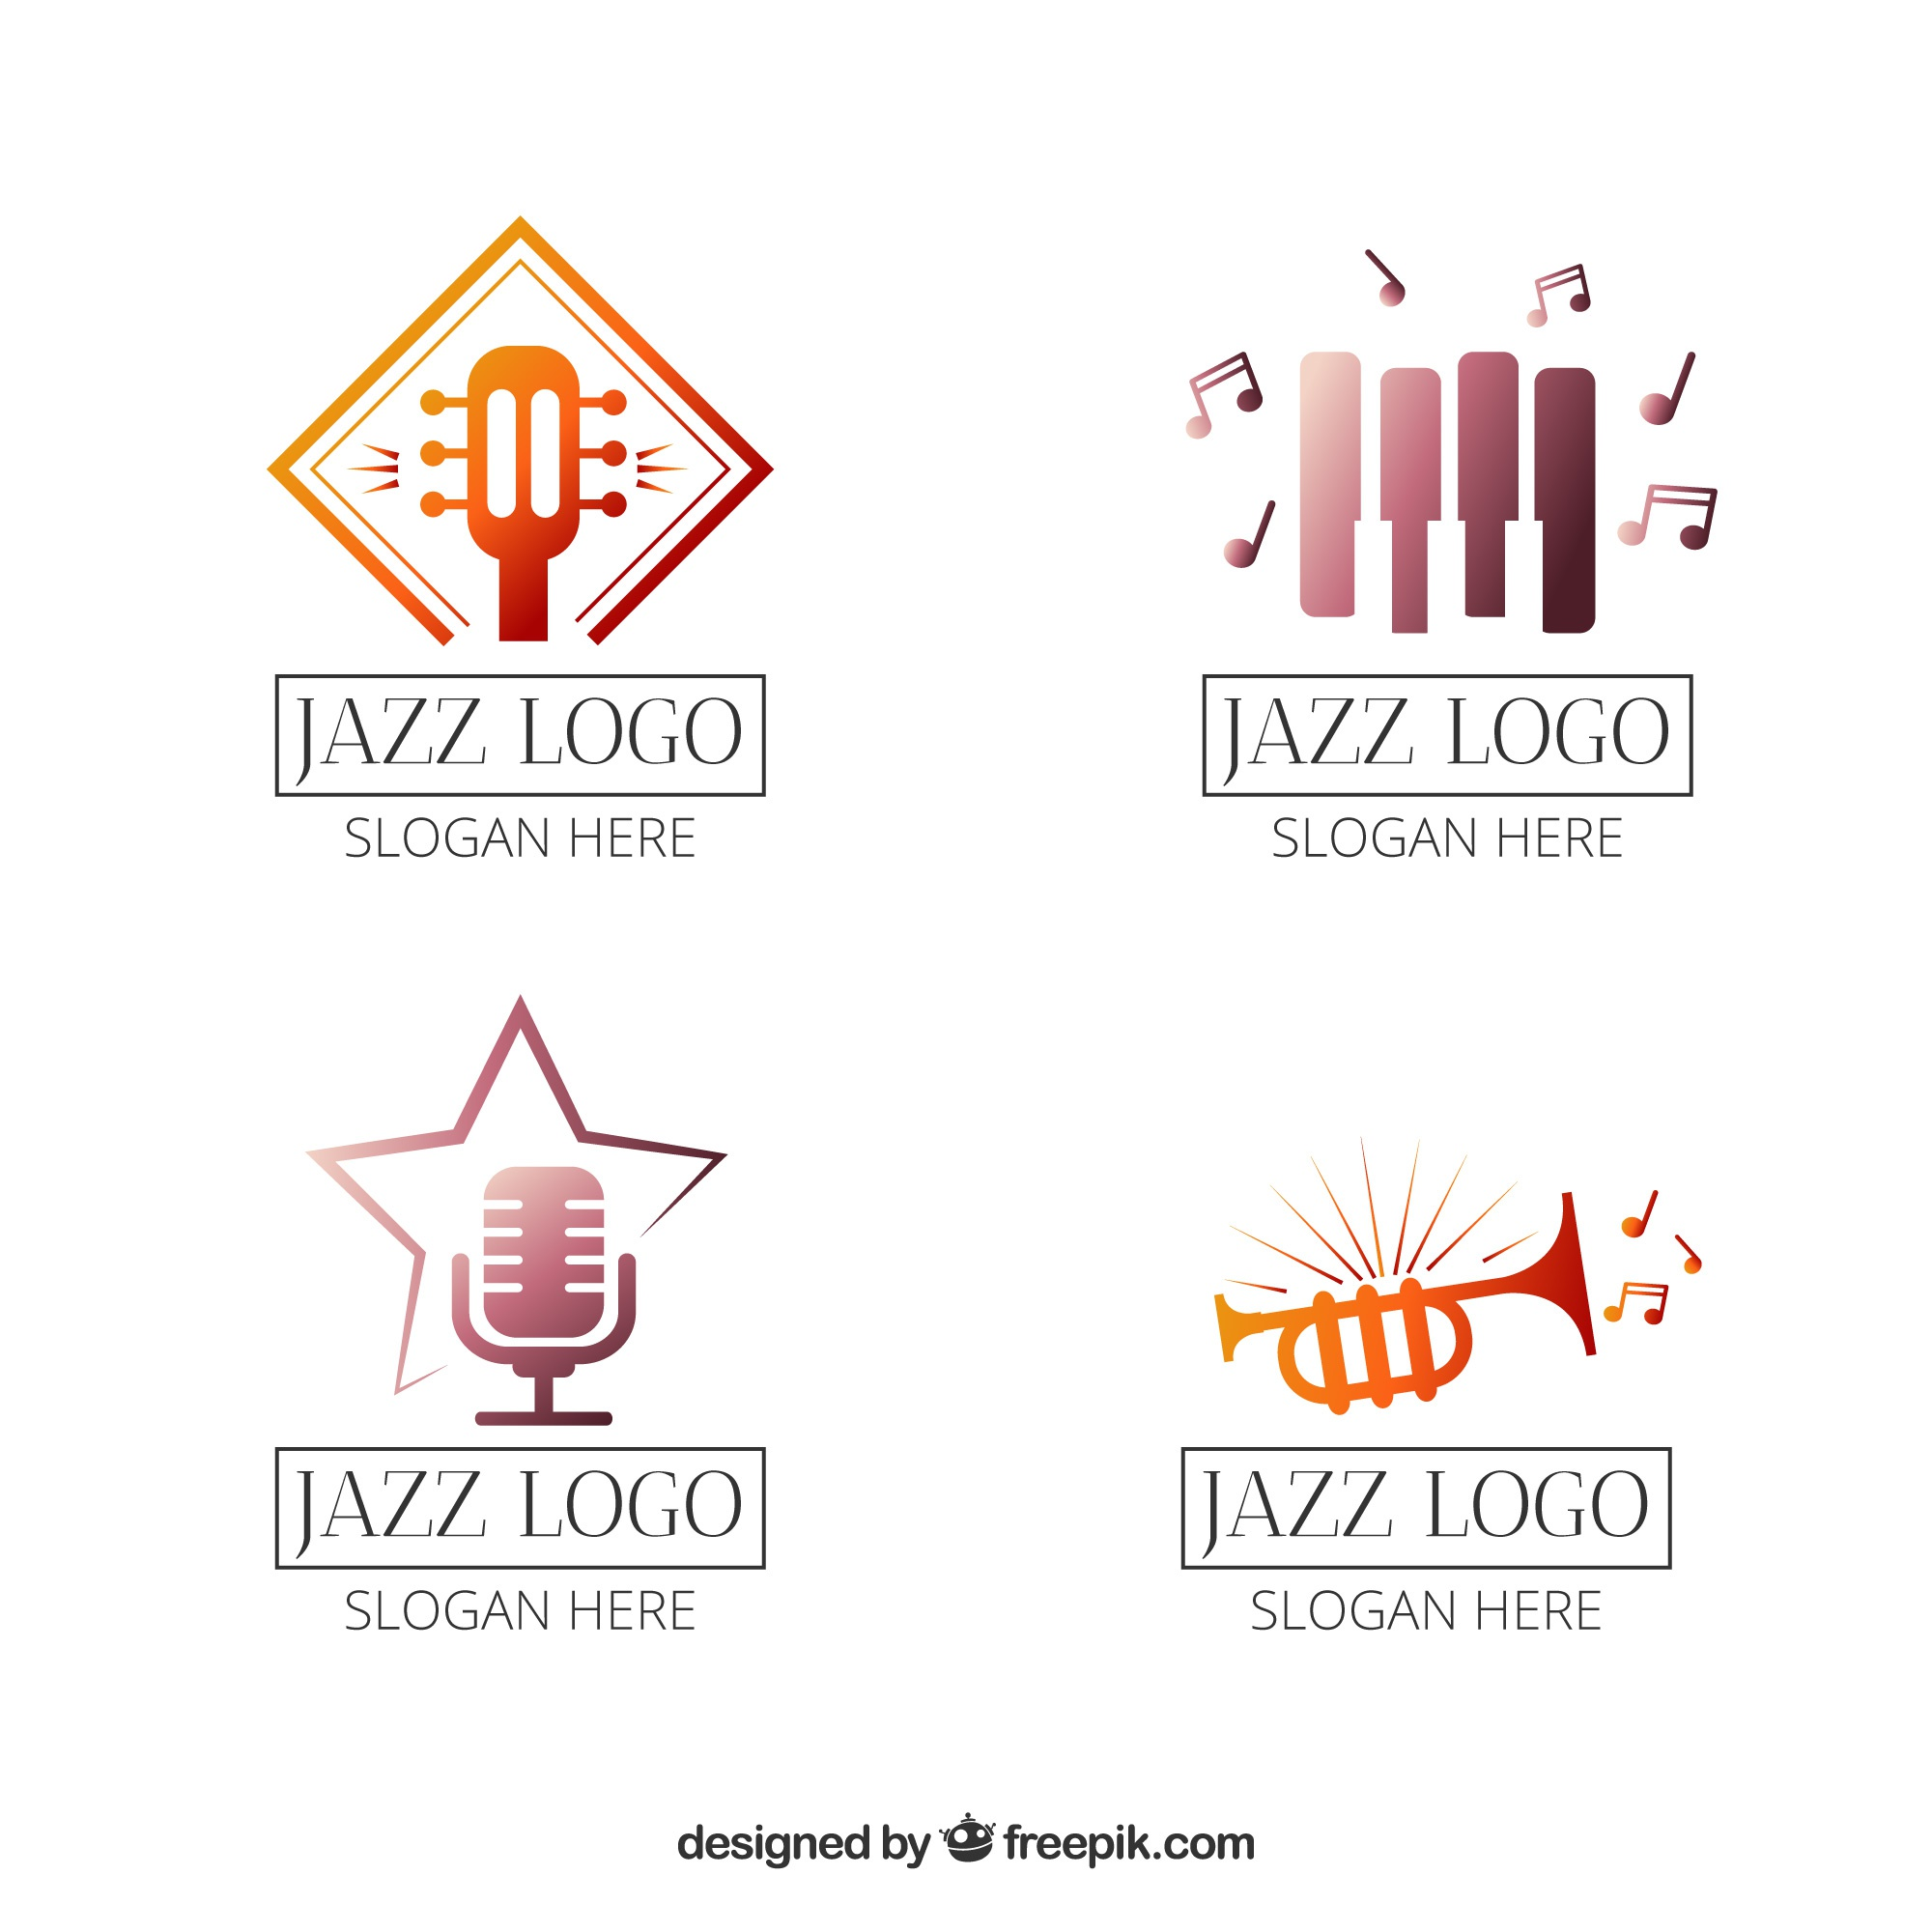 Jazz logos collection in gradient style